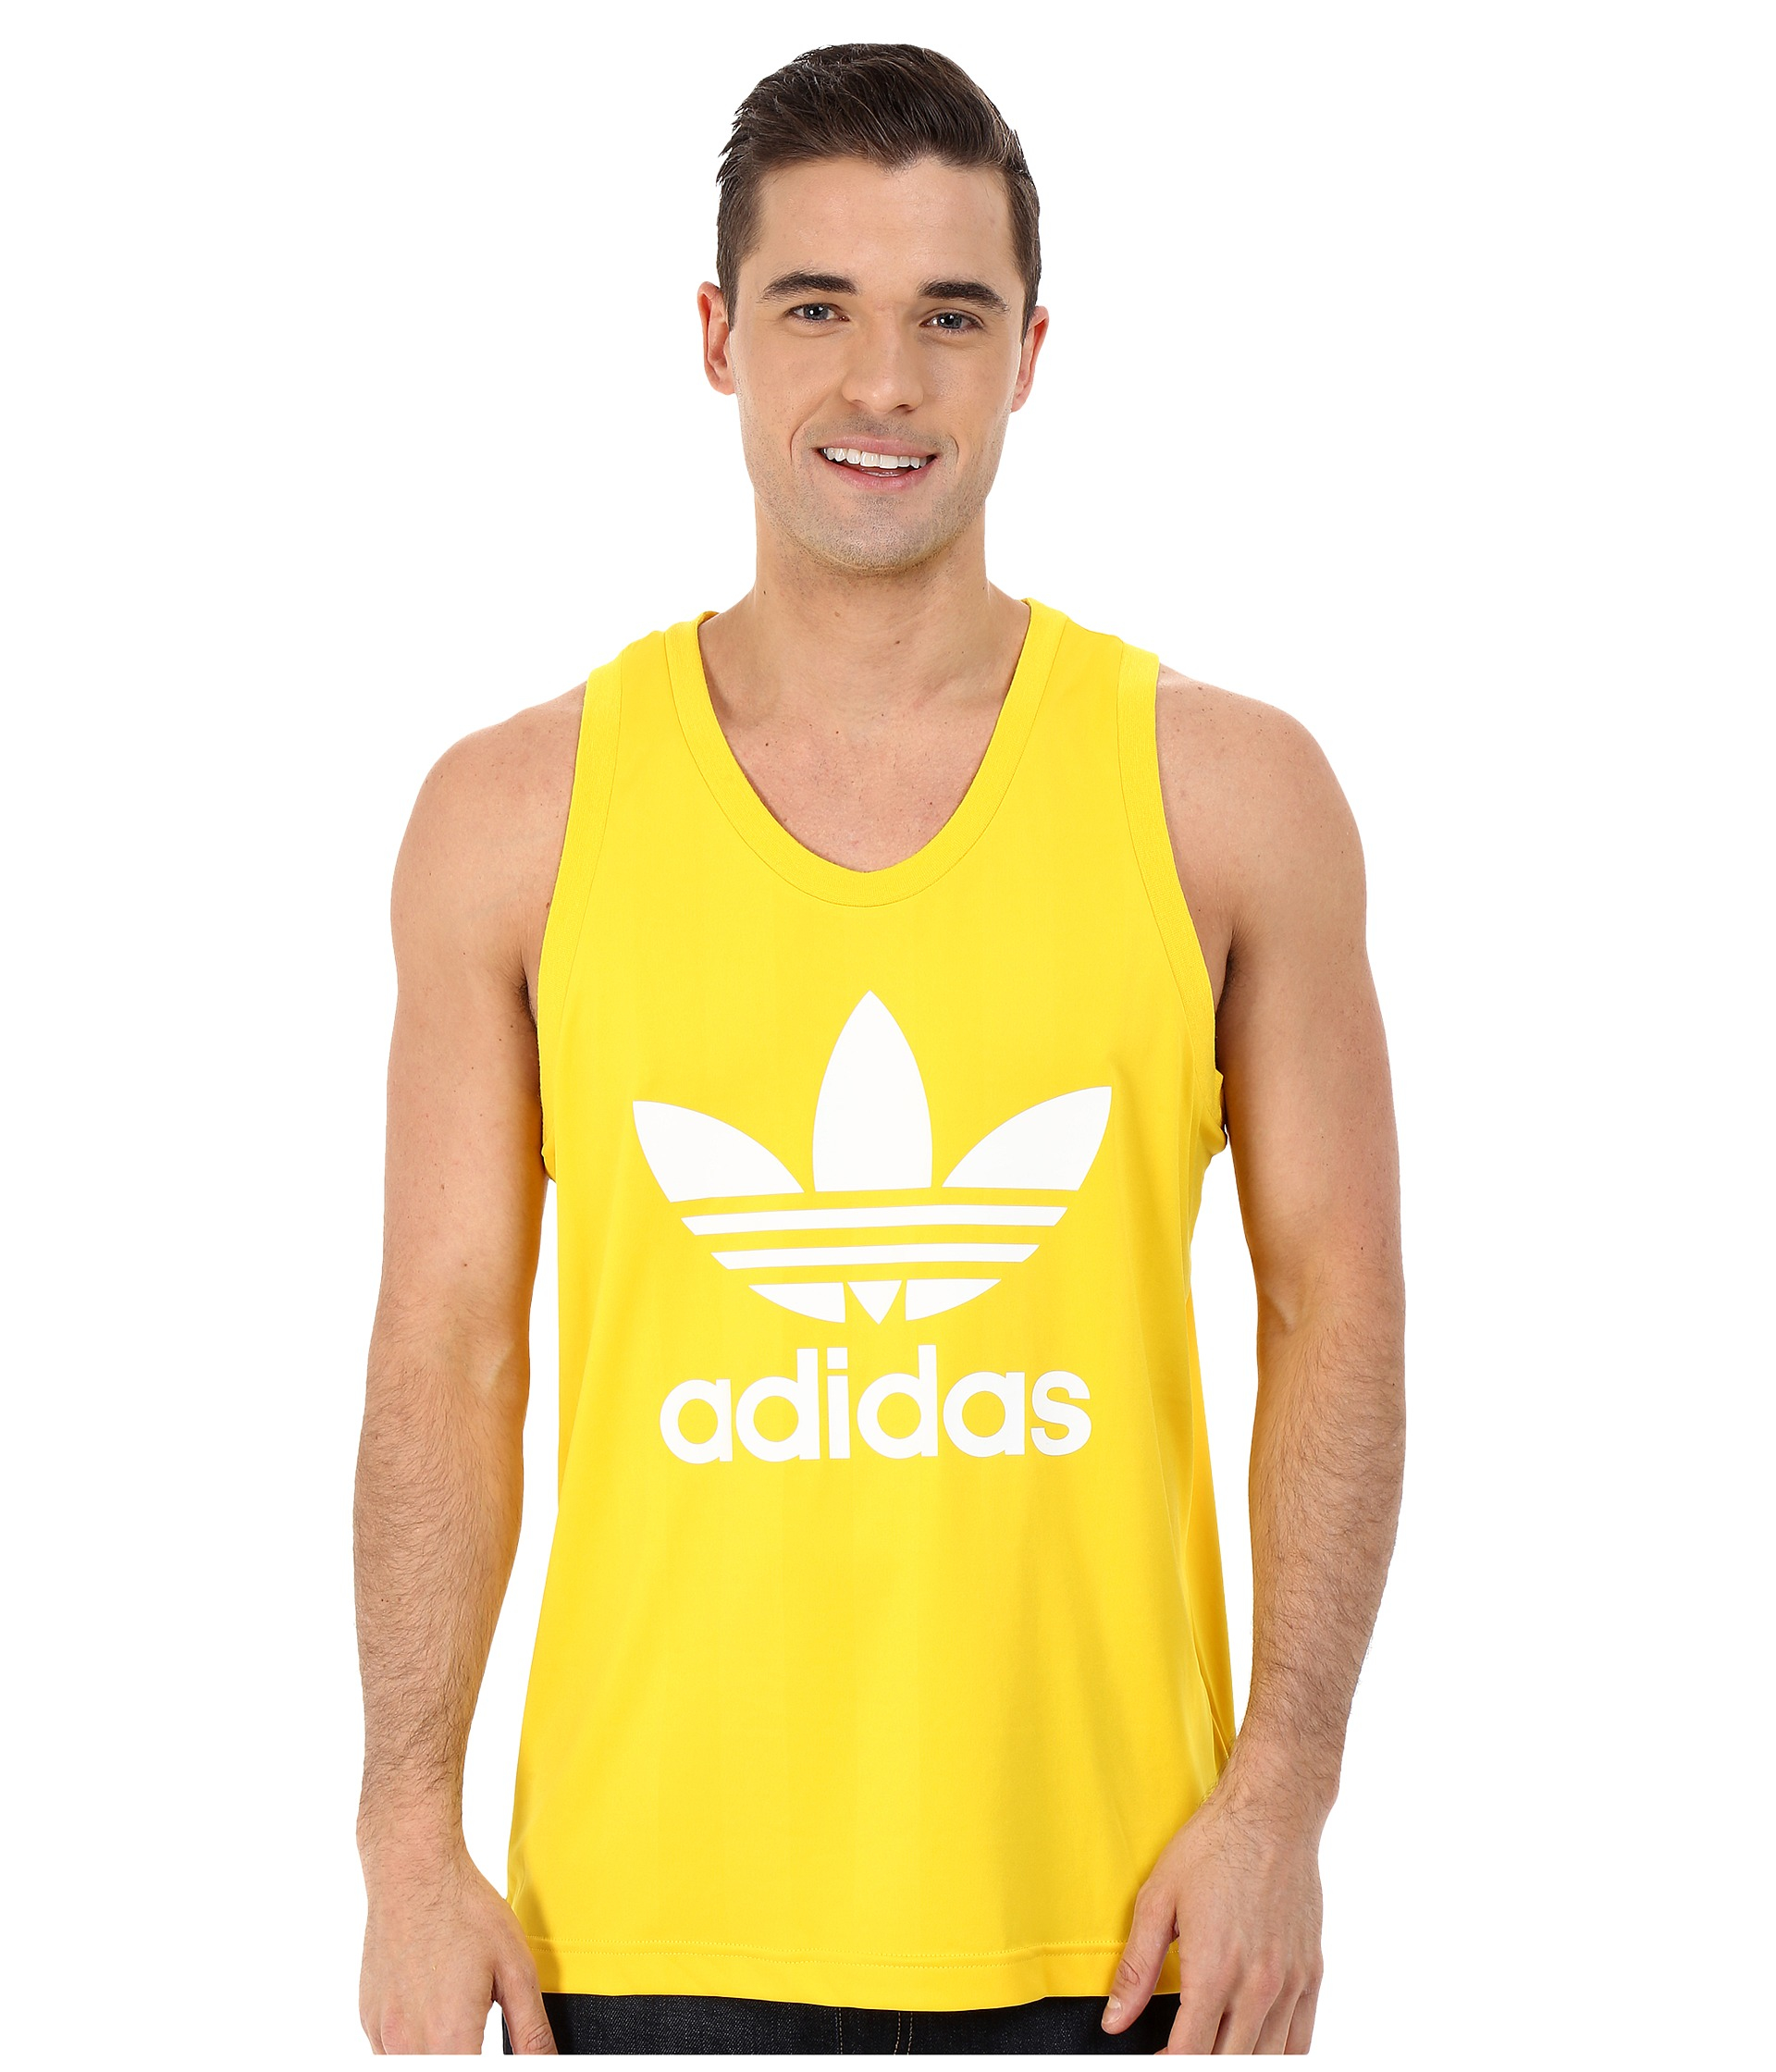 57f561150425d Lyst - adidas Originals Trefoil Tank Top in Yellow for Men